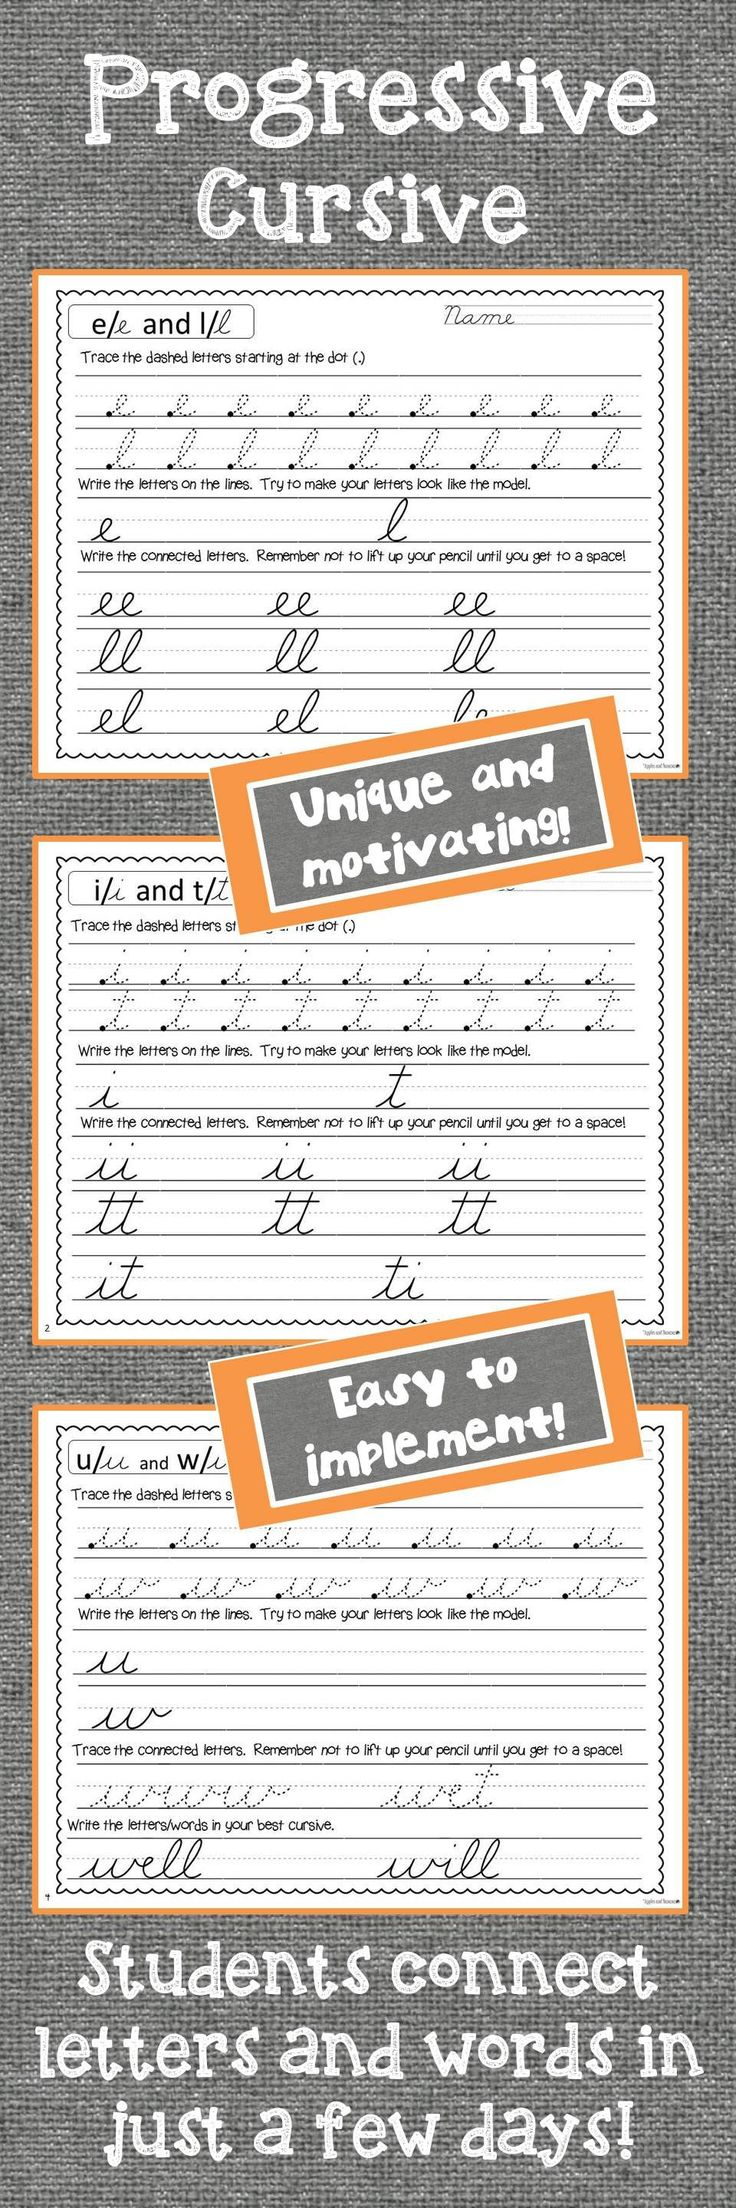 Unique handwriting system - students learn all cursive letters in a progressive order.  In just two lessons, students are connecting letters and writing words. Students love this cursive program!